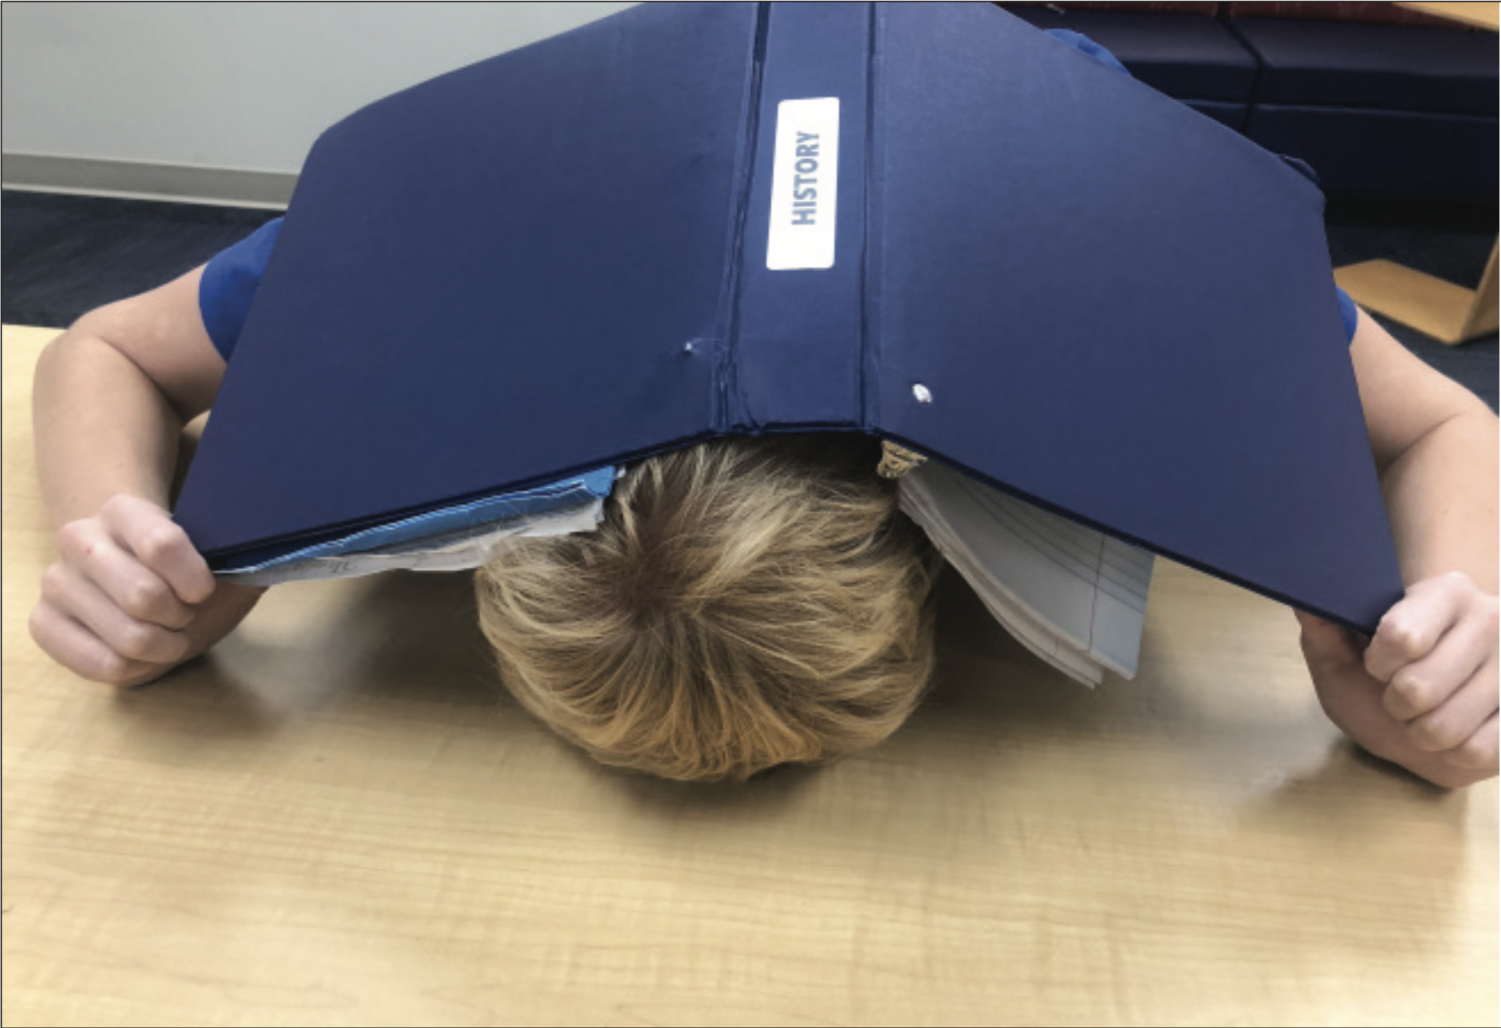 Sophomore Camp Carter falls to the pressure of exams, holding his history binder over his head in defeat.